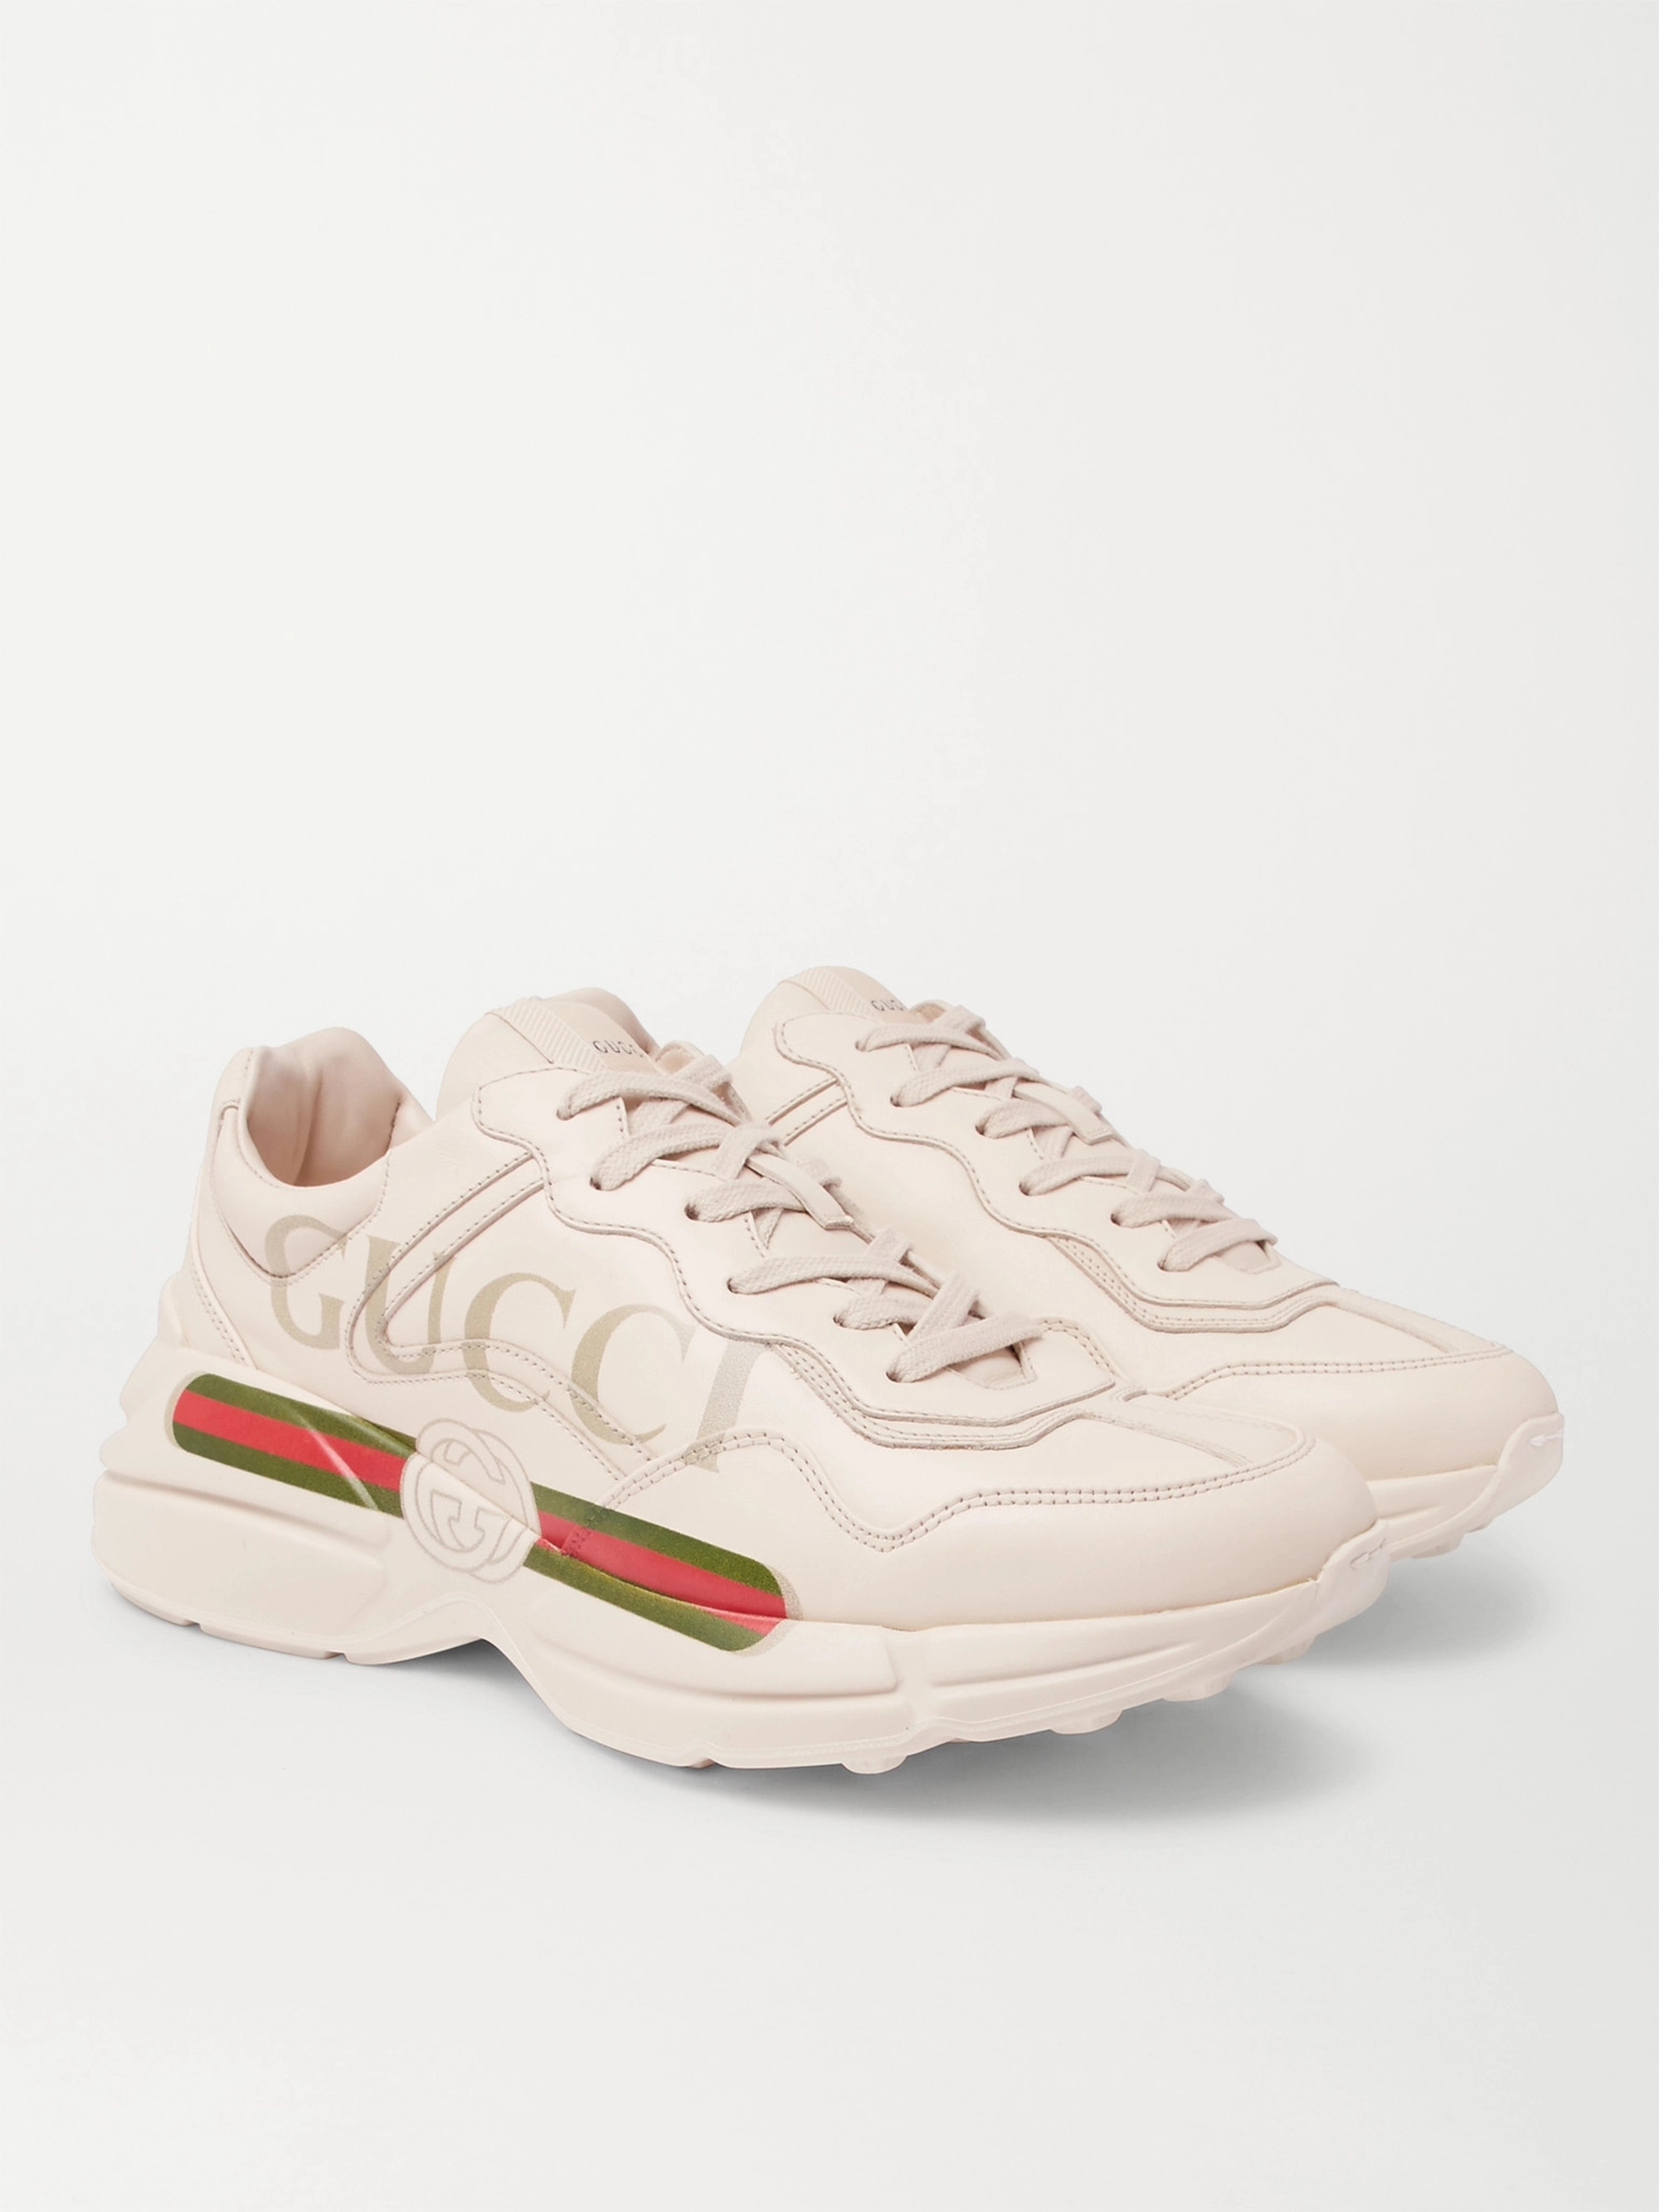 92ce44836 Off-white Rhyton Logo-Print Leather Sneakers   Gucci   MR PORTER